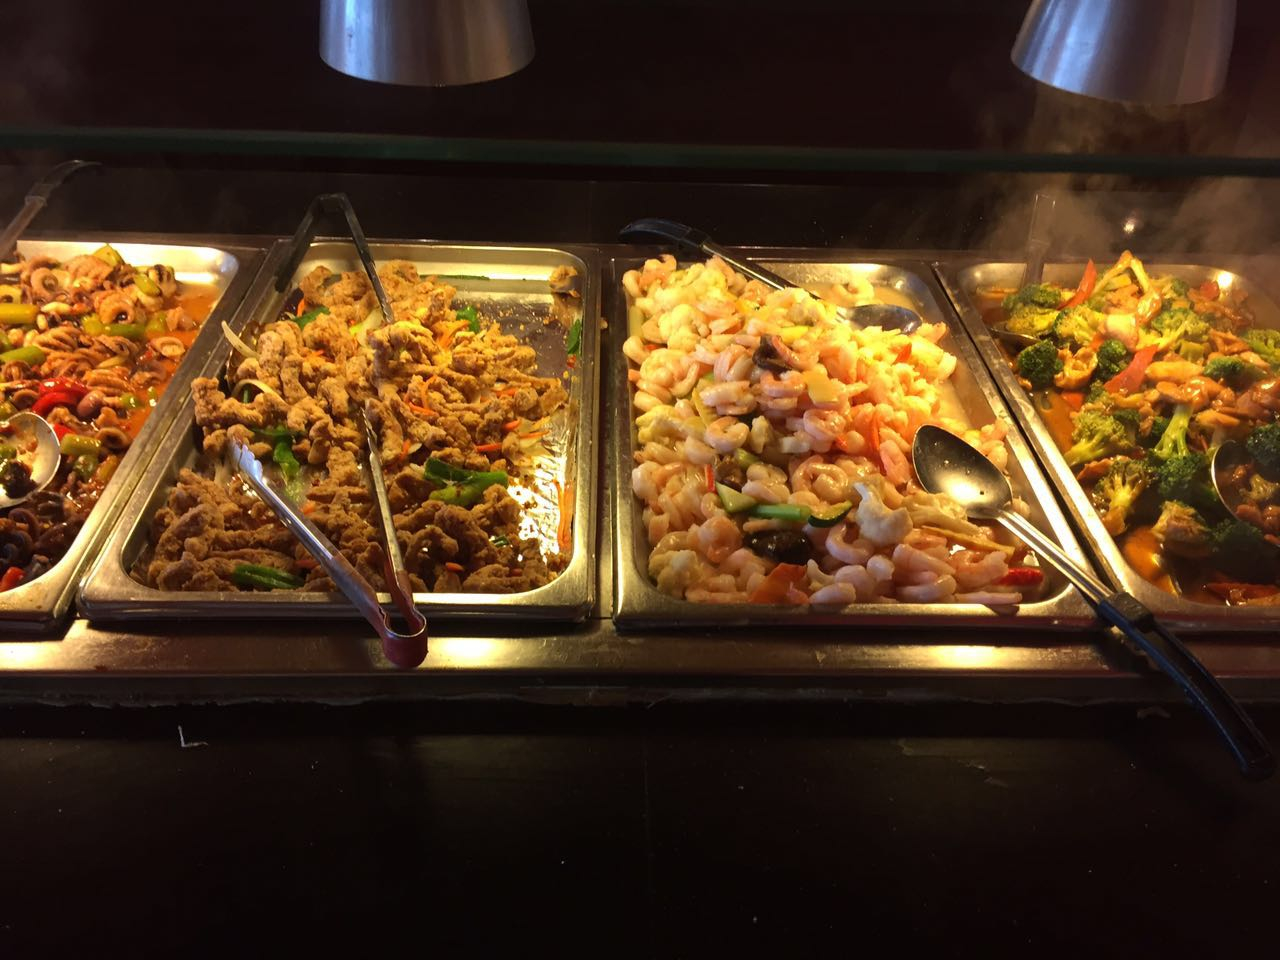 Marvelous Kumo Buffet Sushi Seafood Parma Cleveland Oh 44134 Home Interior And Landscaping Oversignezvosmurscom